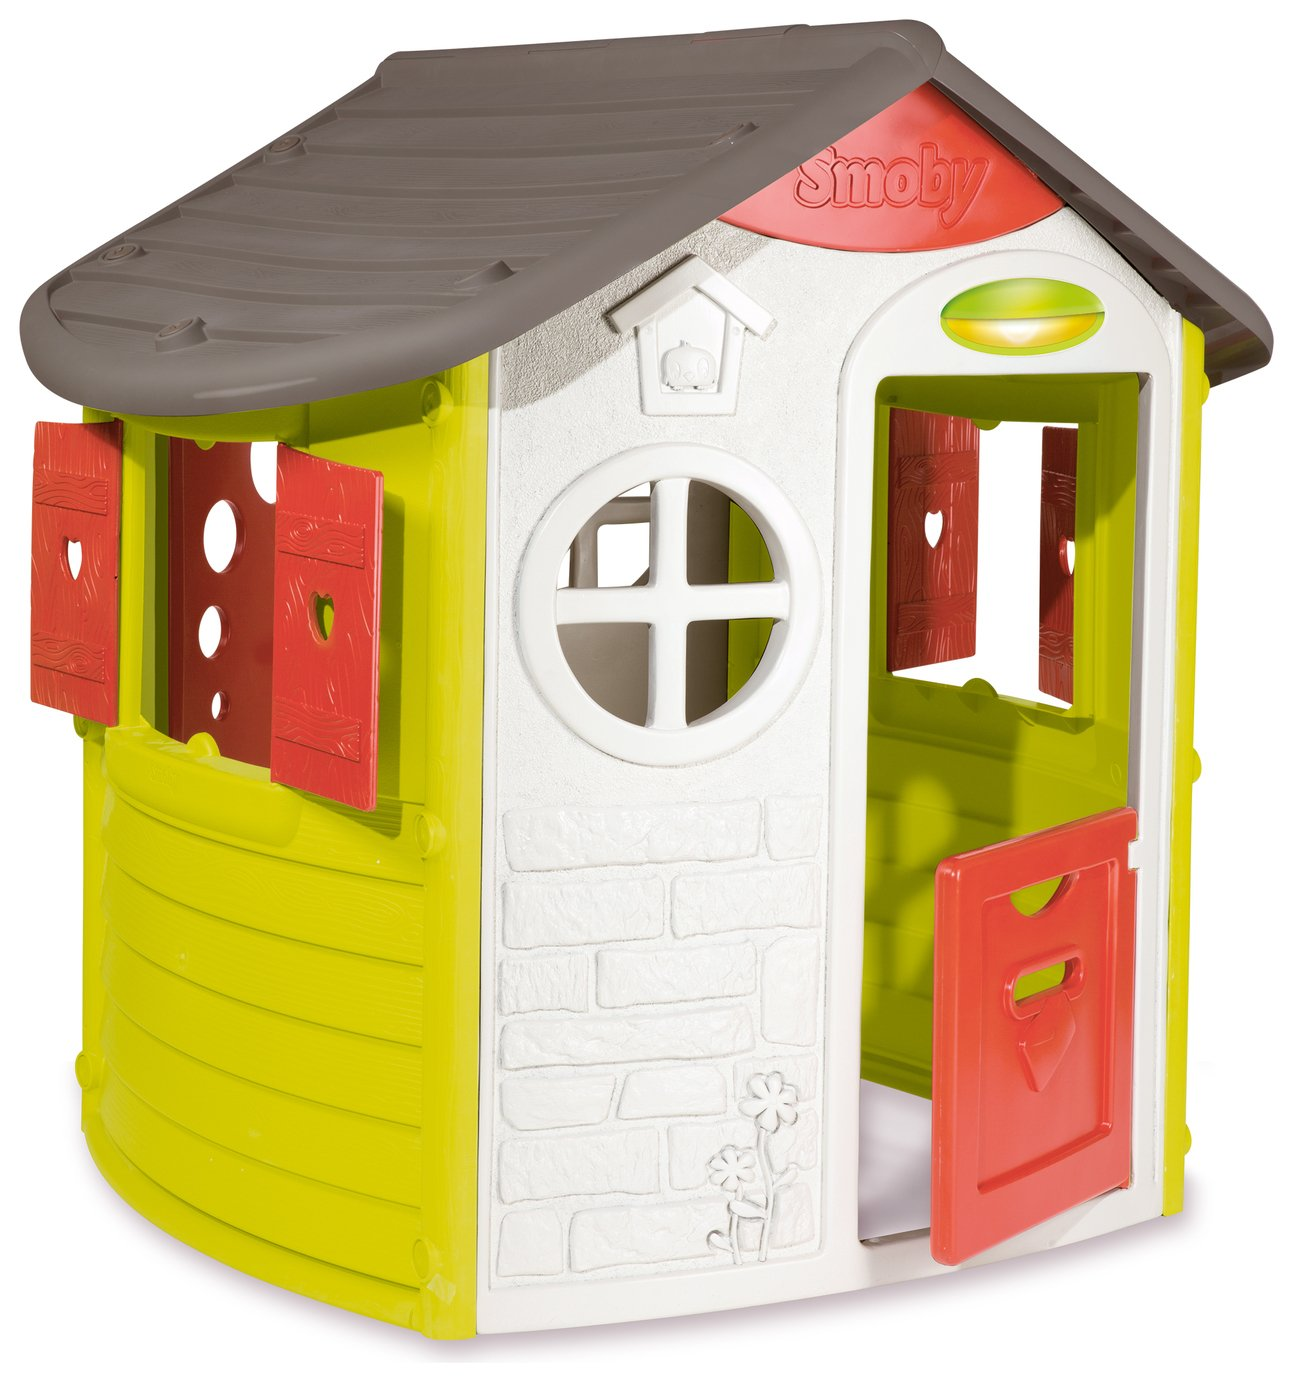 Smoby Jura Lodge Playhouse from Smoby